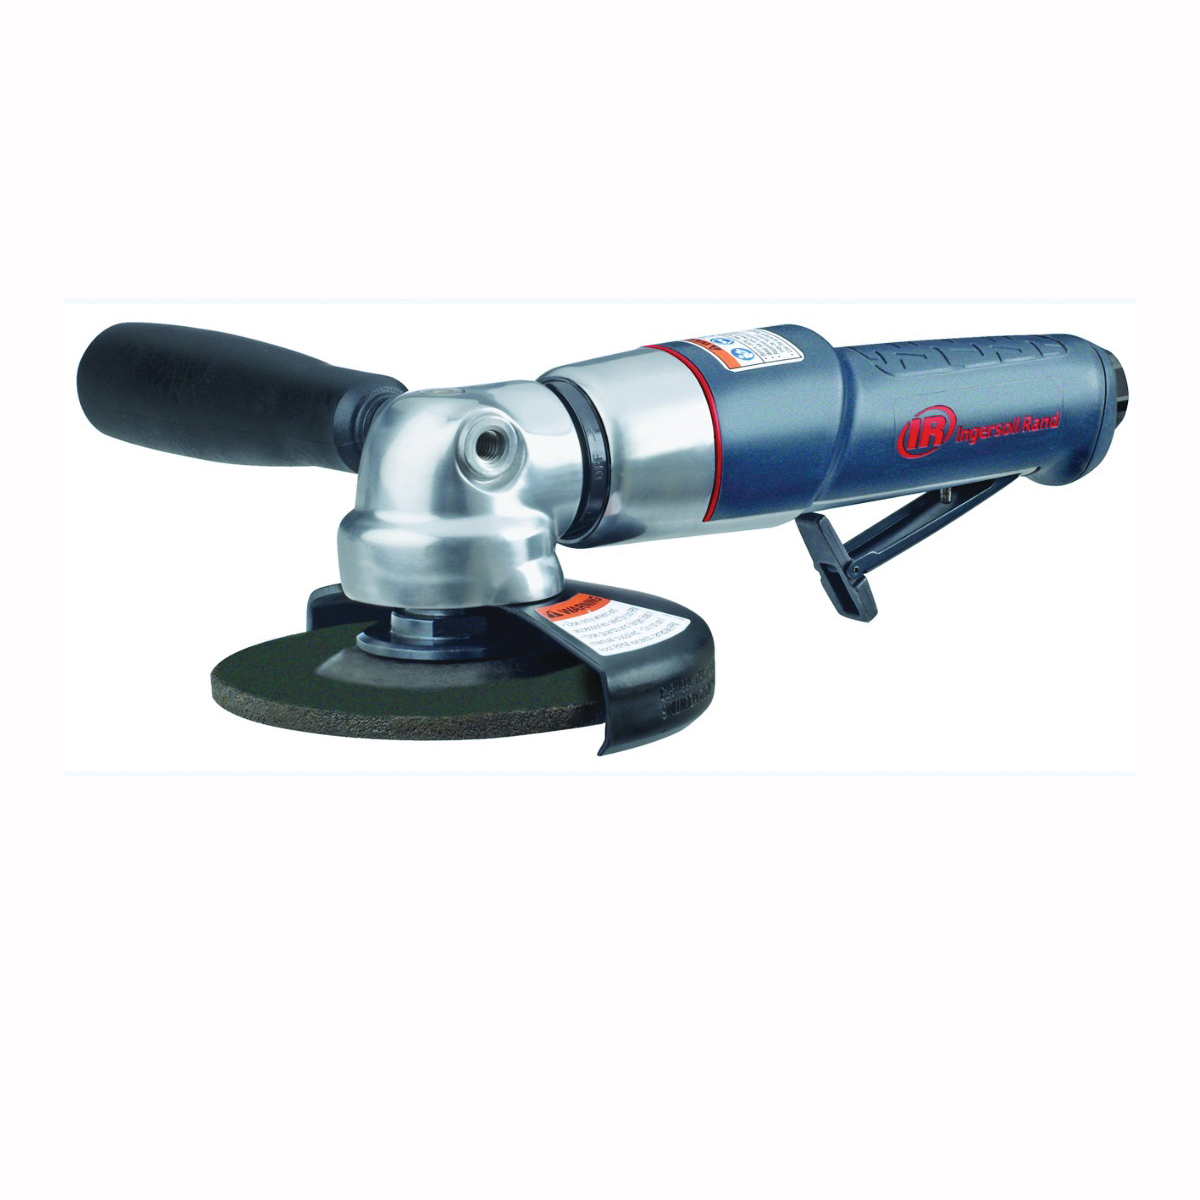 Picture of Ingersoll Rand 3445MAX Angle Grinder, 4-1/2 in Dia Wheel, 12,000 rpm Speed, 41 cfm Air, 0.88 hp